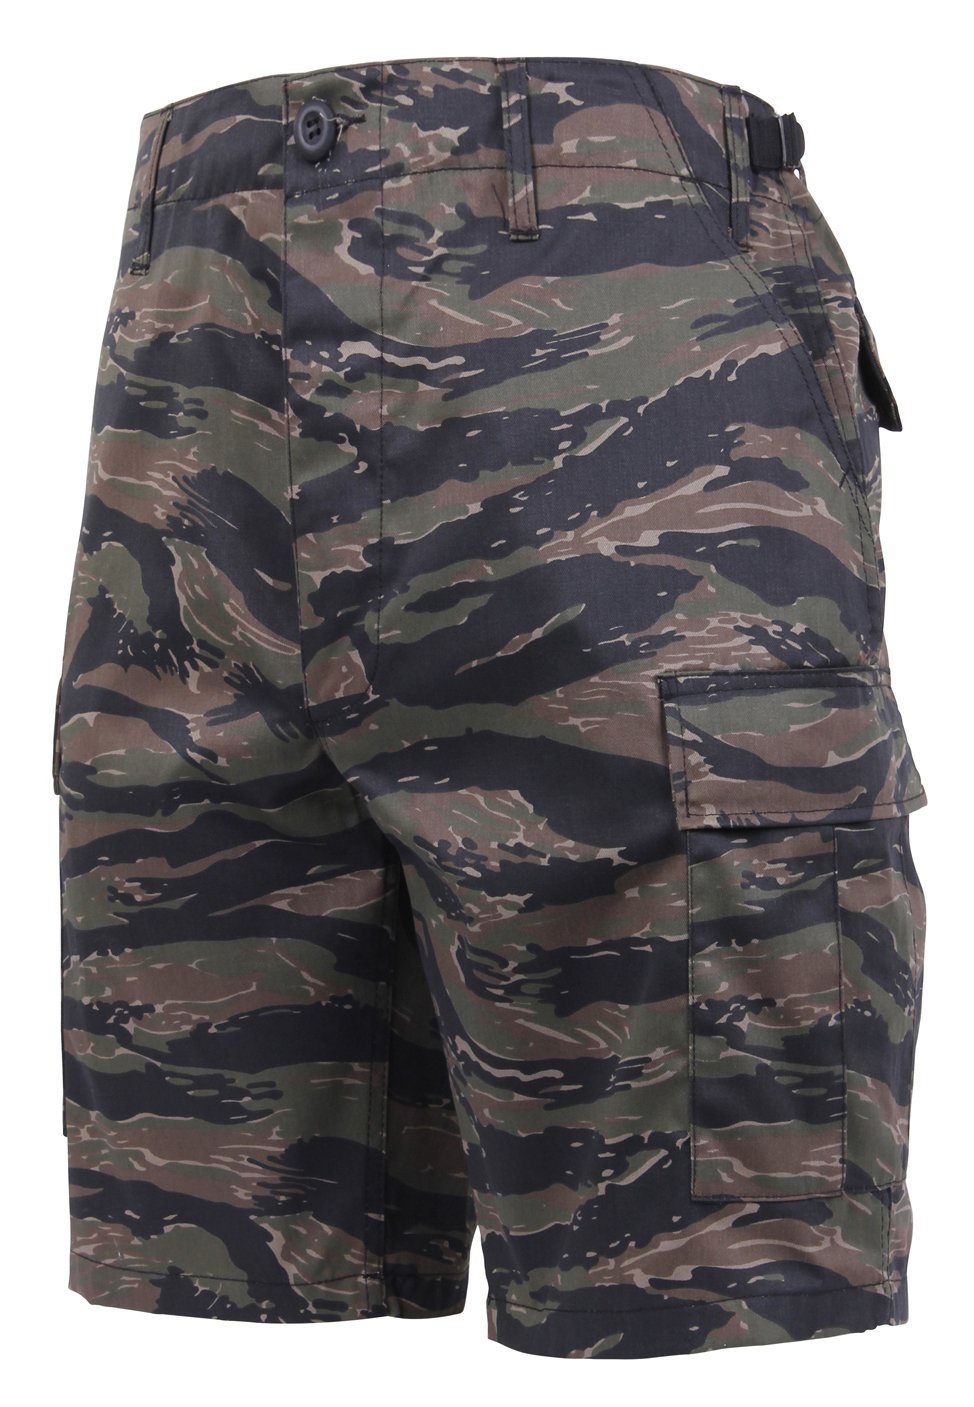 Rothco Bdu Short P/C - Tiger Stripe Camo/3X-Large by Rothco